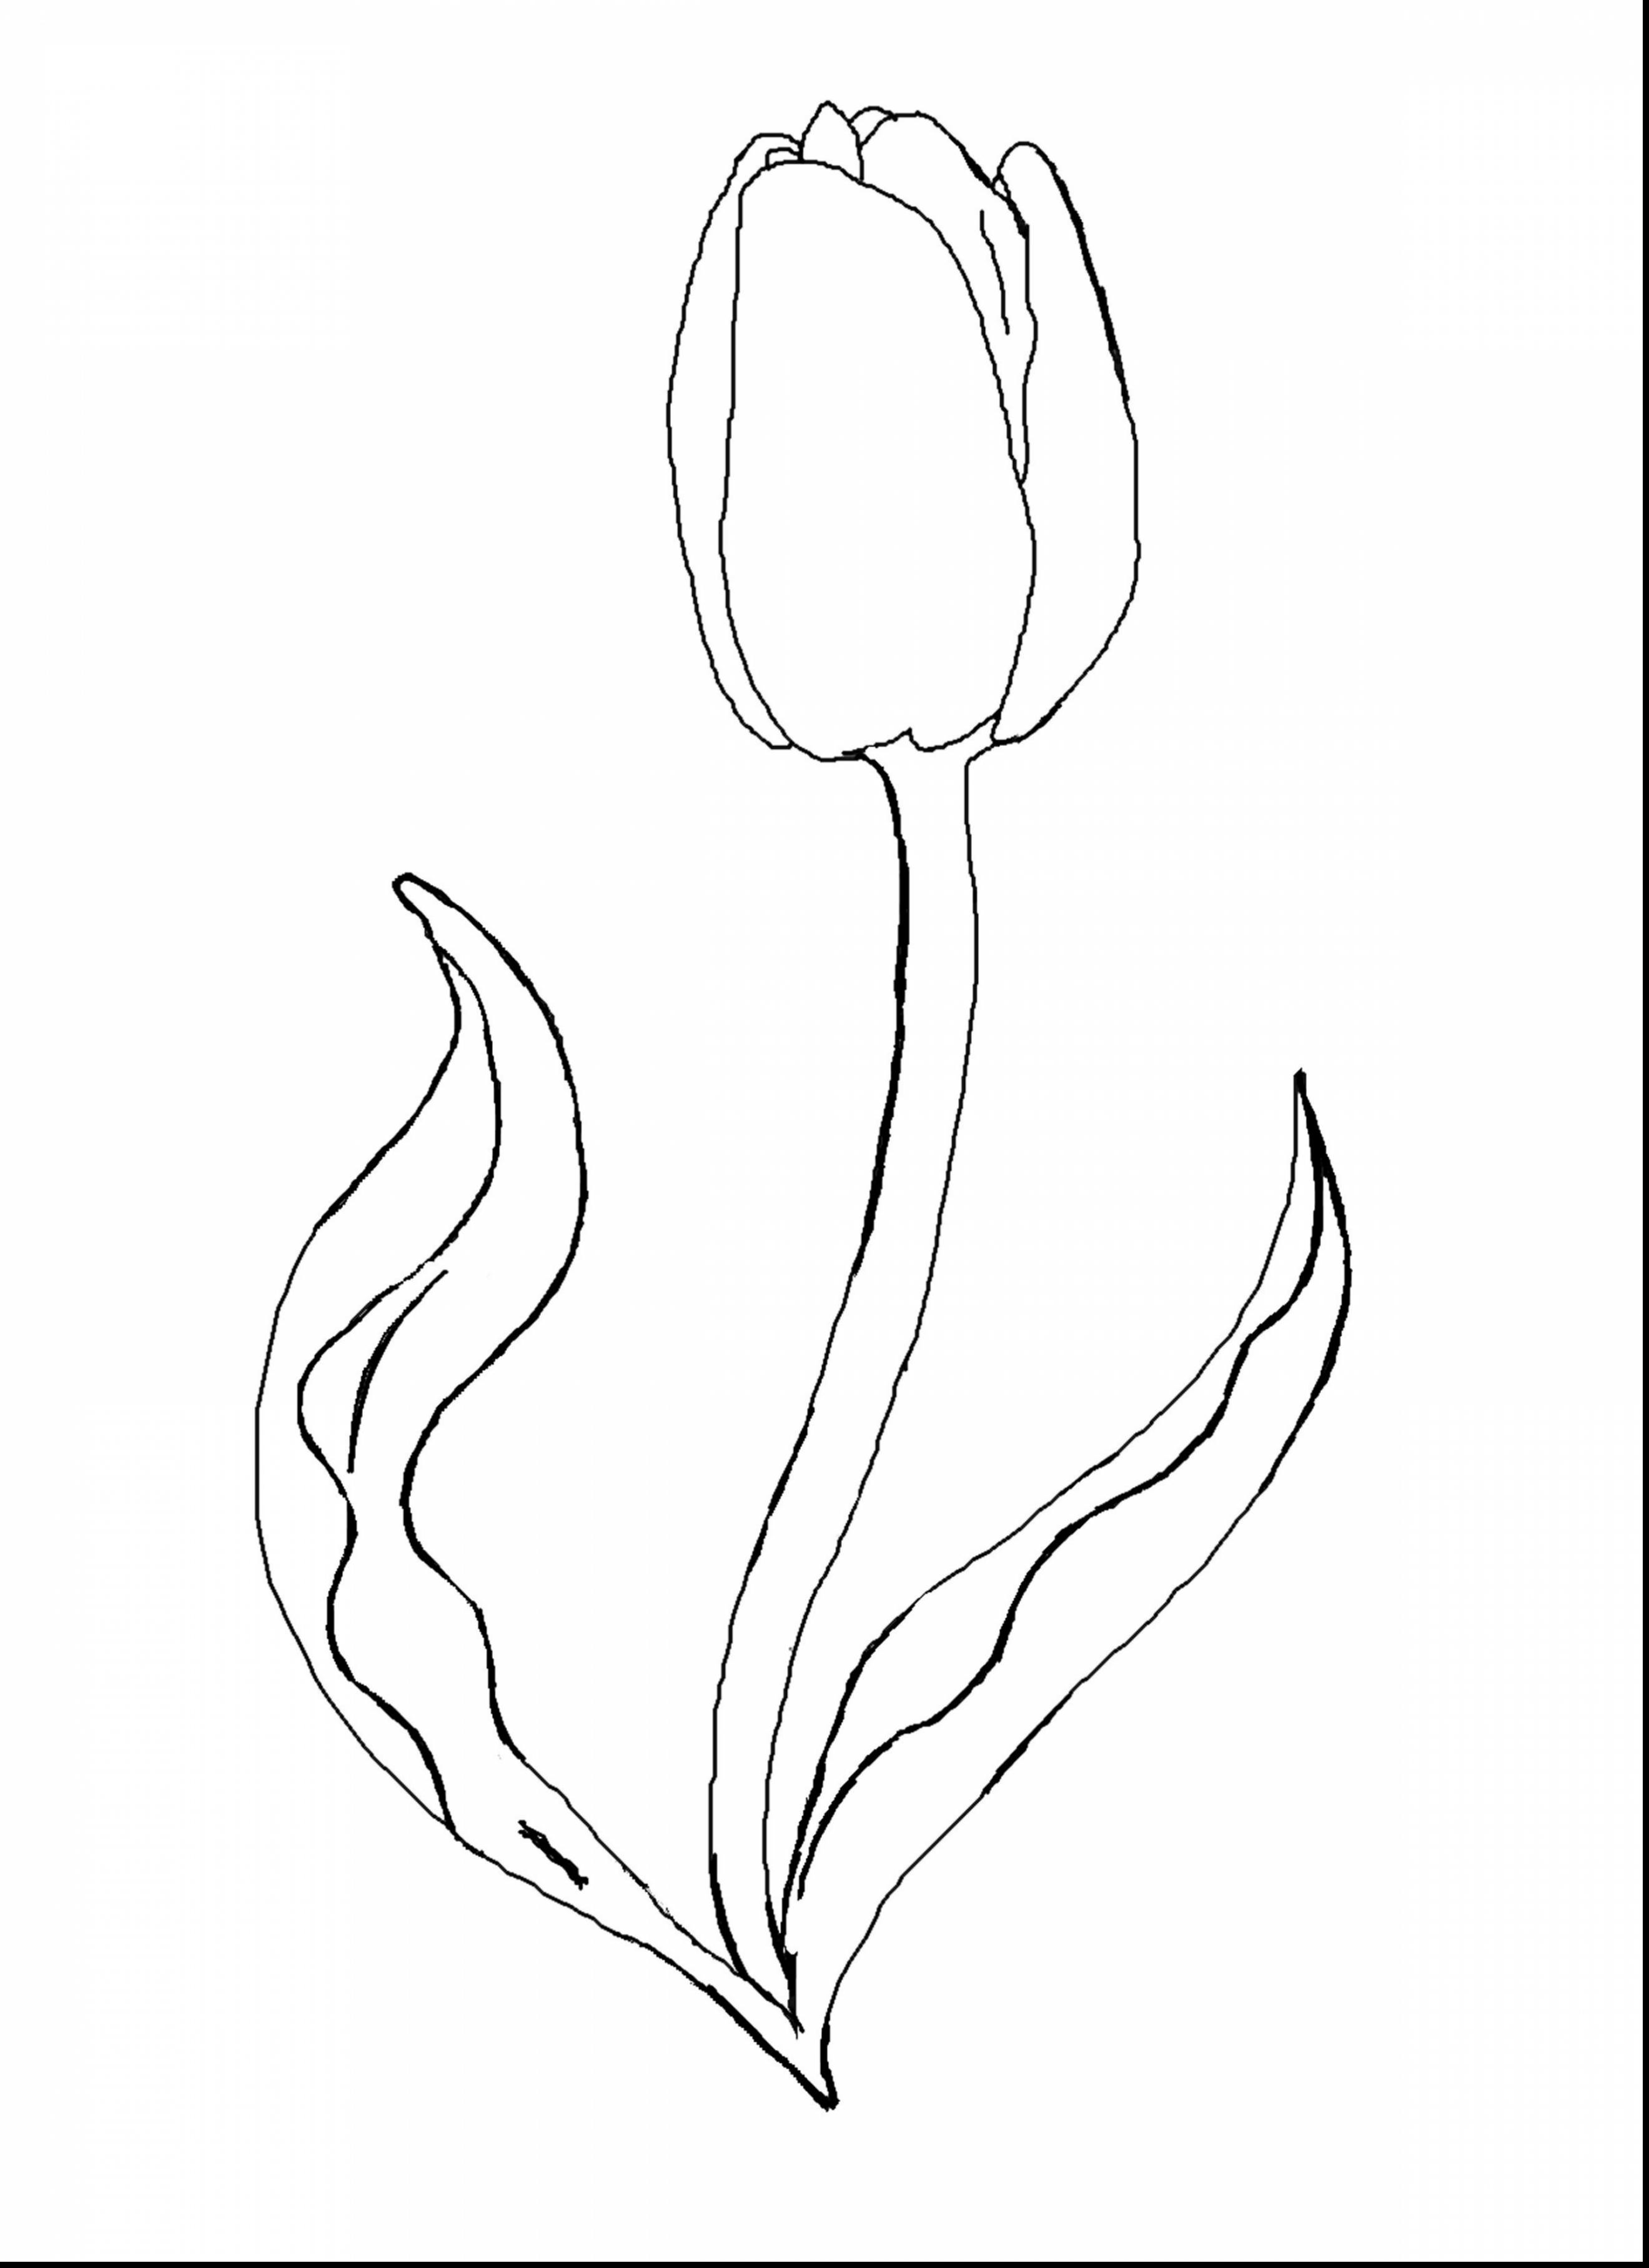 drawings of tulips how to draw a tulip step by step drawing tutorials tulips of drawings